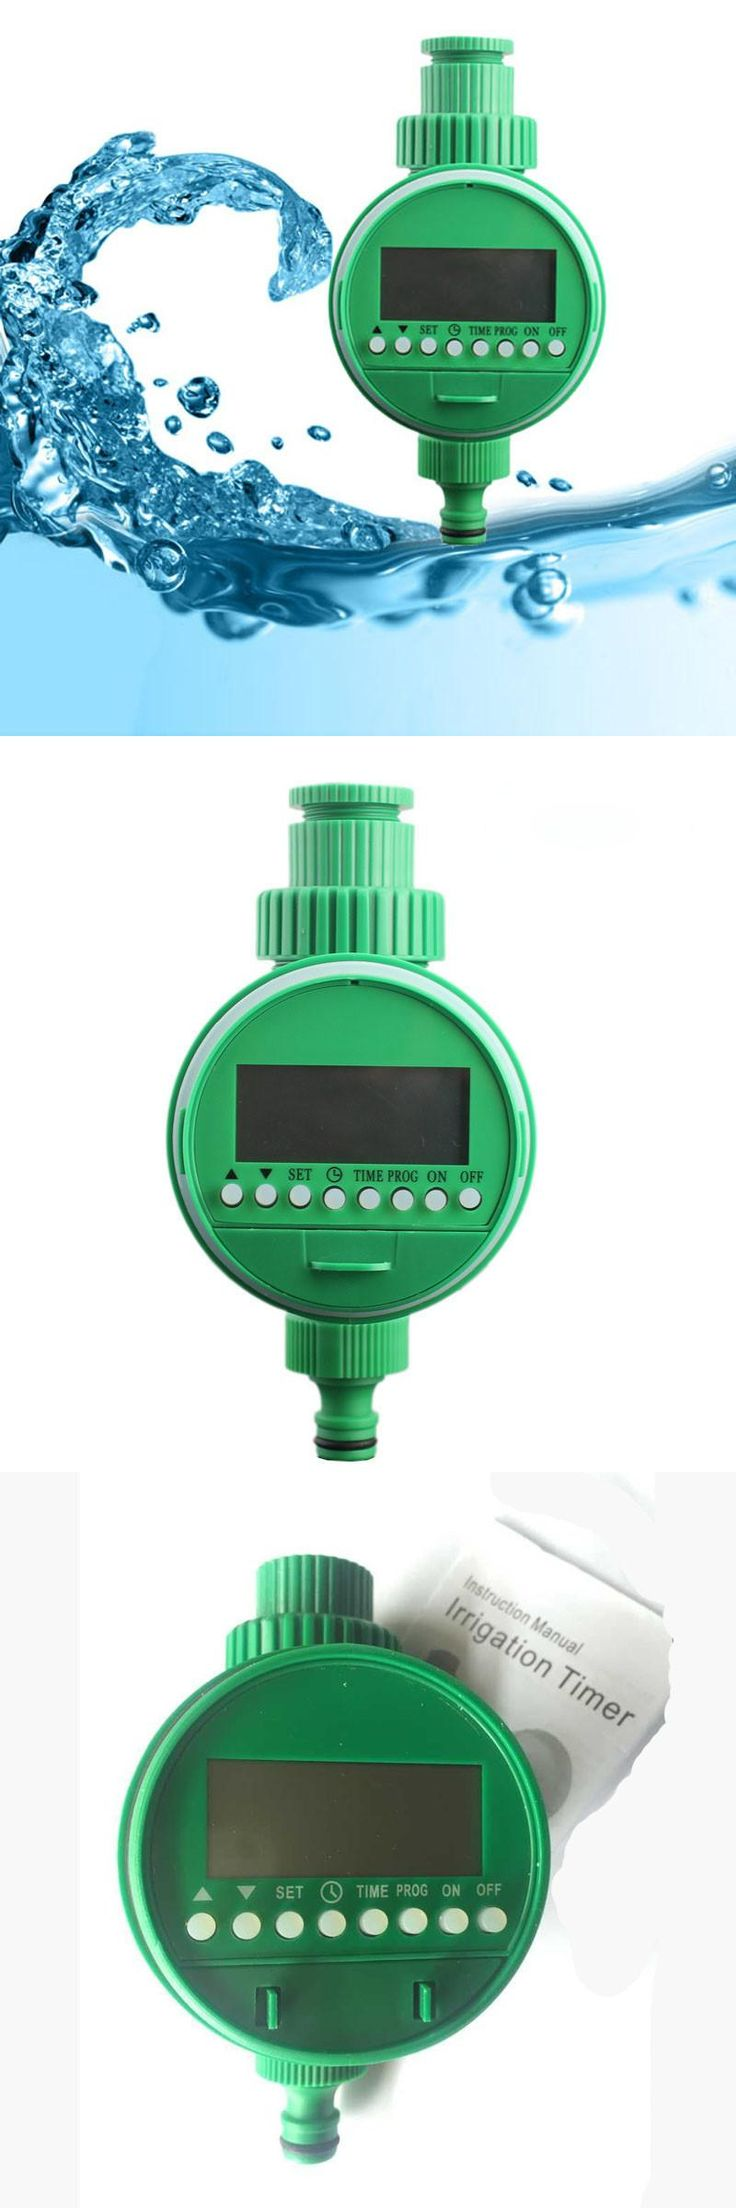 [Visit to Buy] New Home Water Timer Garden Irrigation Controller Set Water Programs GA Automatic Watering Timer Irrigation Controllers #Advertisement